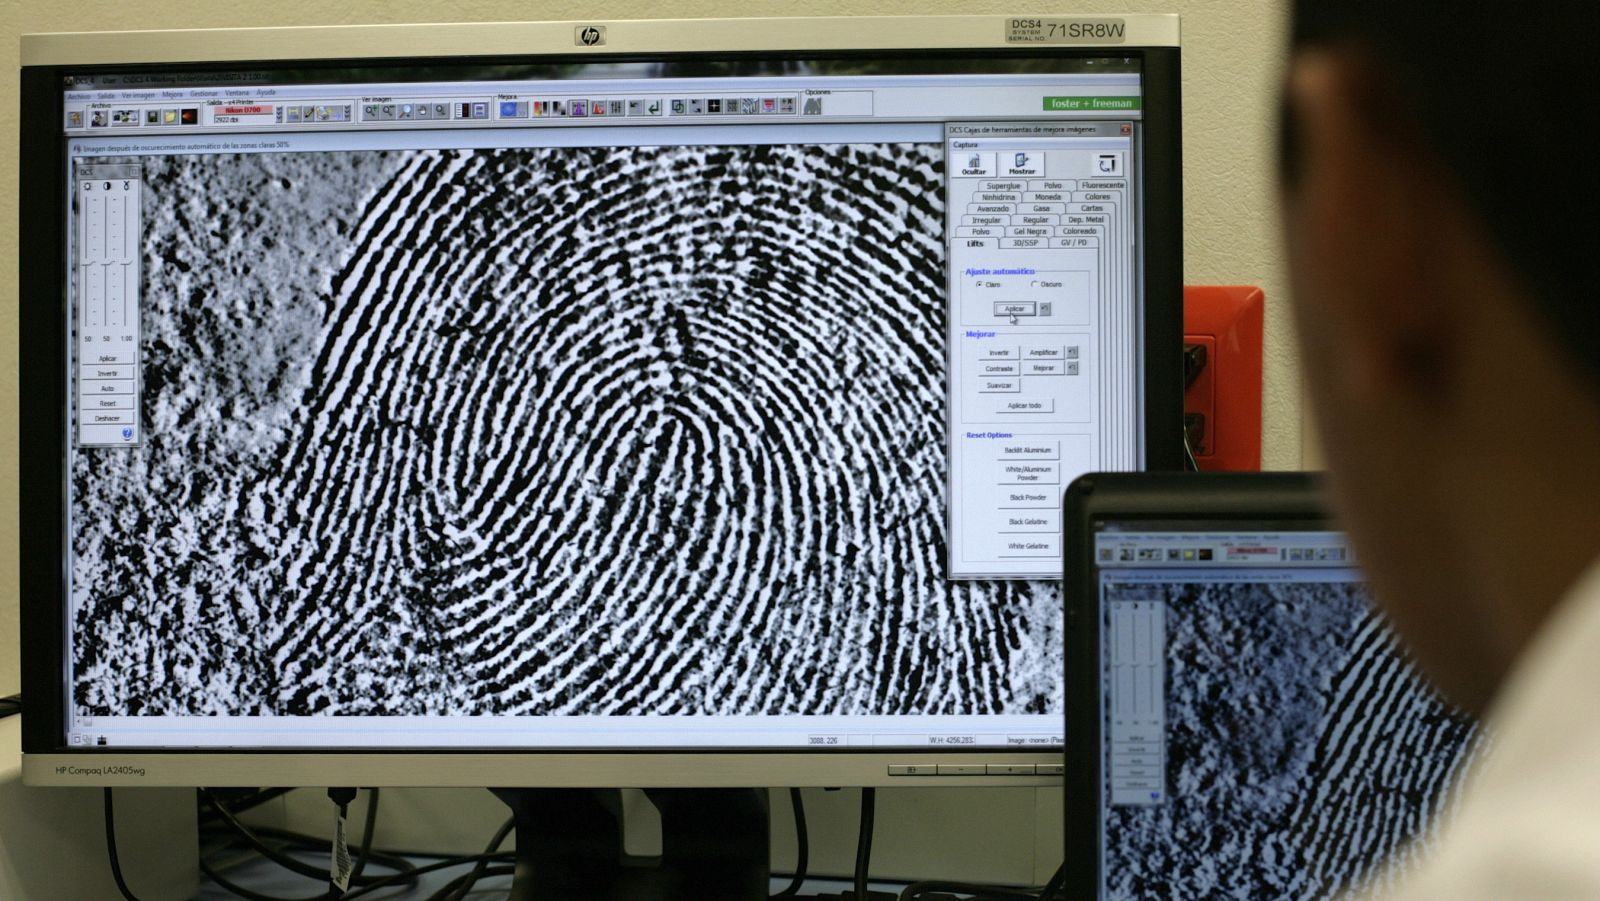 What Can a Hacker Do With Your Stolen Fingerprints?